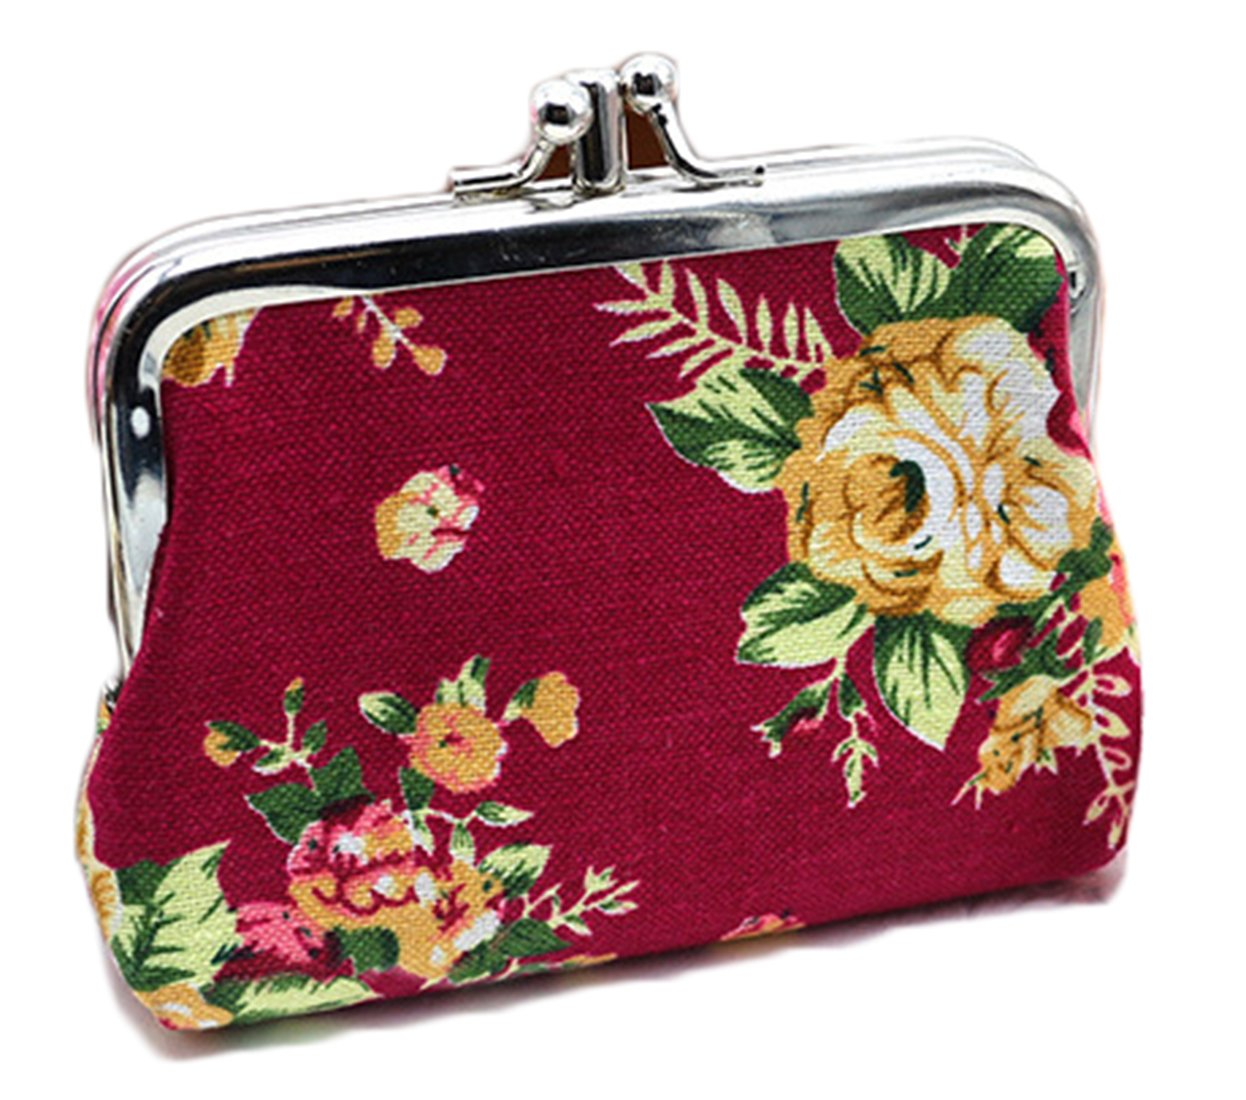 iSuperb Coin Pouch Purse Cute Double-Layer Rose Pattern Canvas Gift Jewelry Cards Trinkets Pouch Clasp Closure Wallet 4.7x3.5 inch 10471219